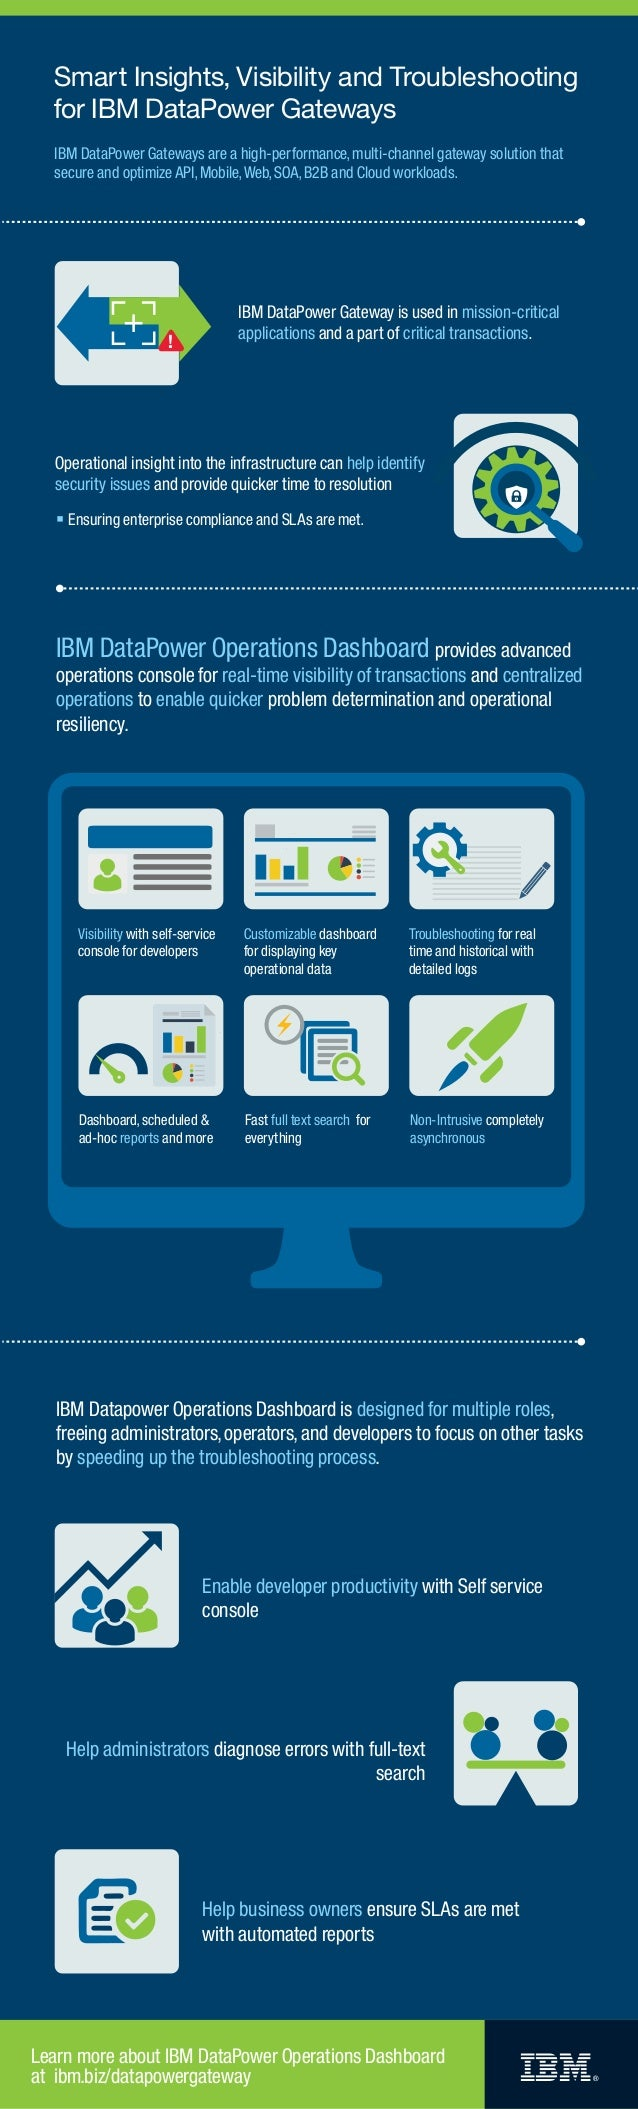 ® Smart Insights, Visibility and Troubleshooting for IBM DataPower Gateways IBM DataPower Gateways are a high-performance,...